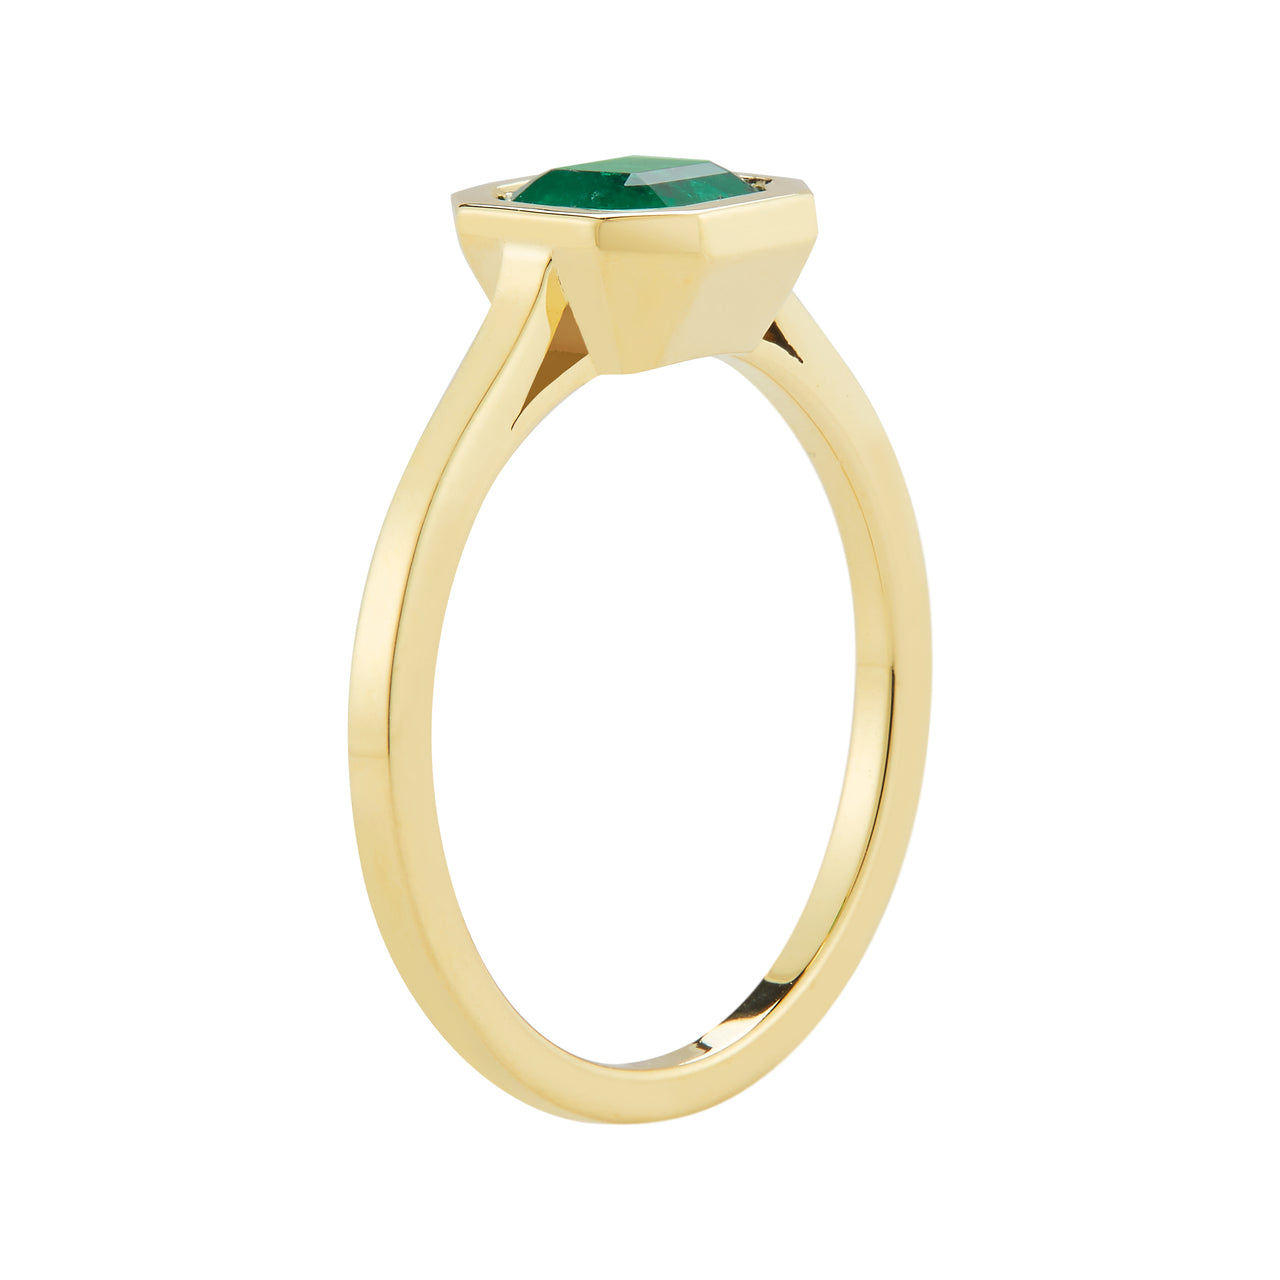 Custom Emerald Engagement Ring by Finn by Candice Pool Neistat